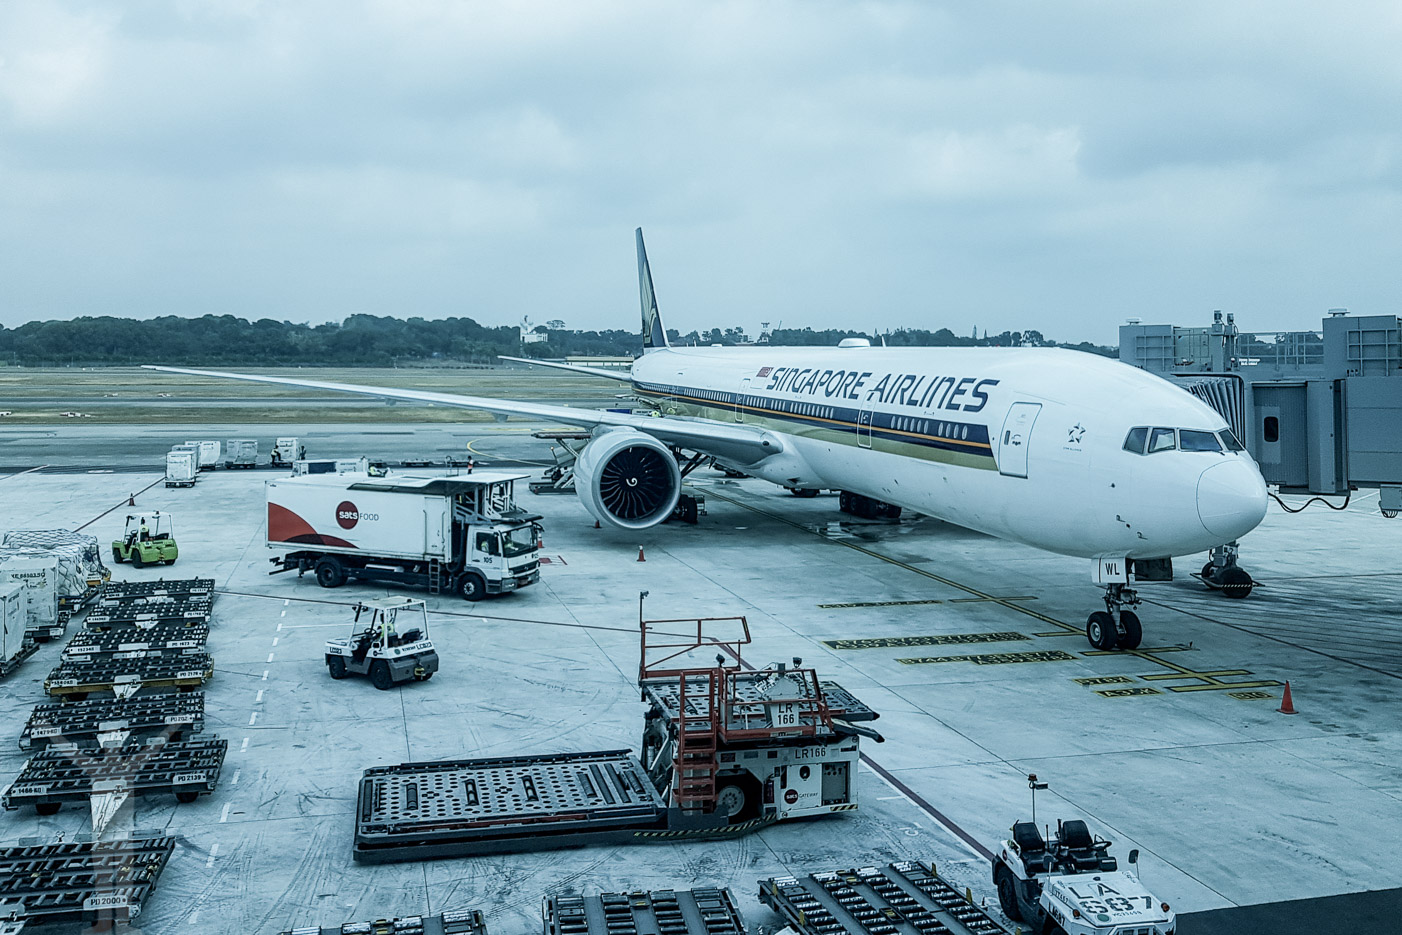 Singapore Airlines B77W på Changi